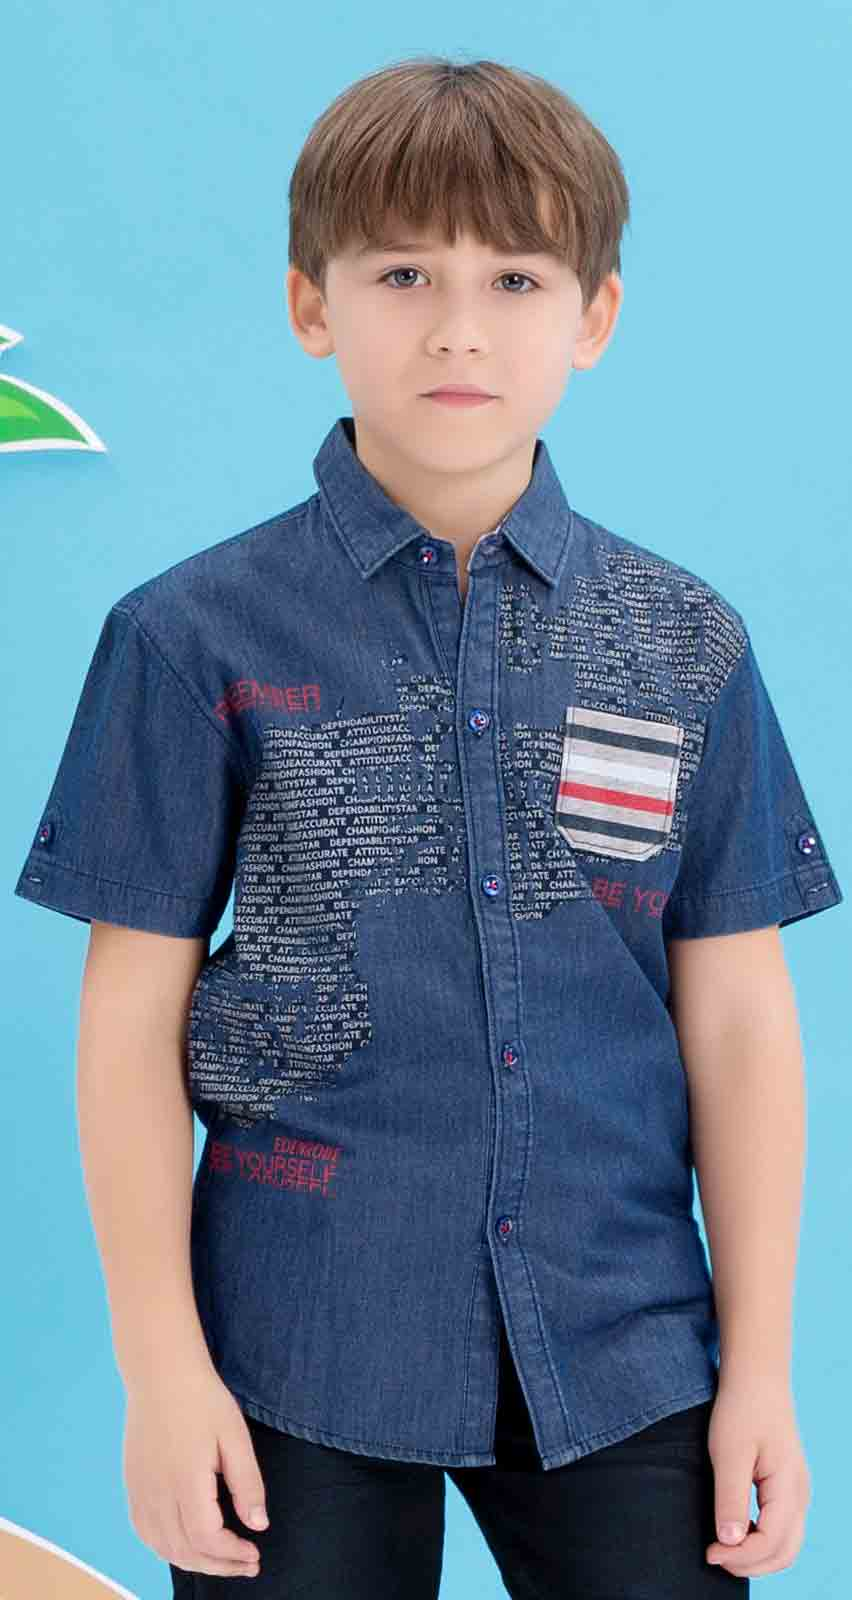 Edenrobe blue shirt with jeans latest eid dresses for little boys in Pakistan 2017